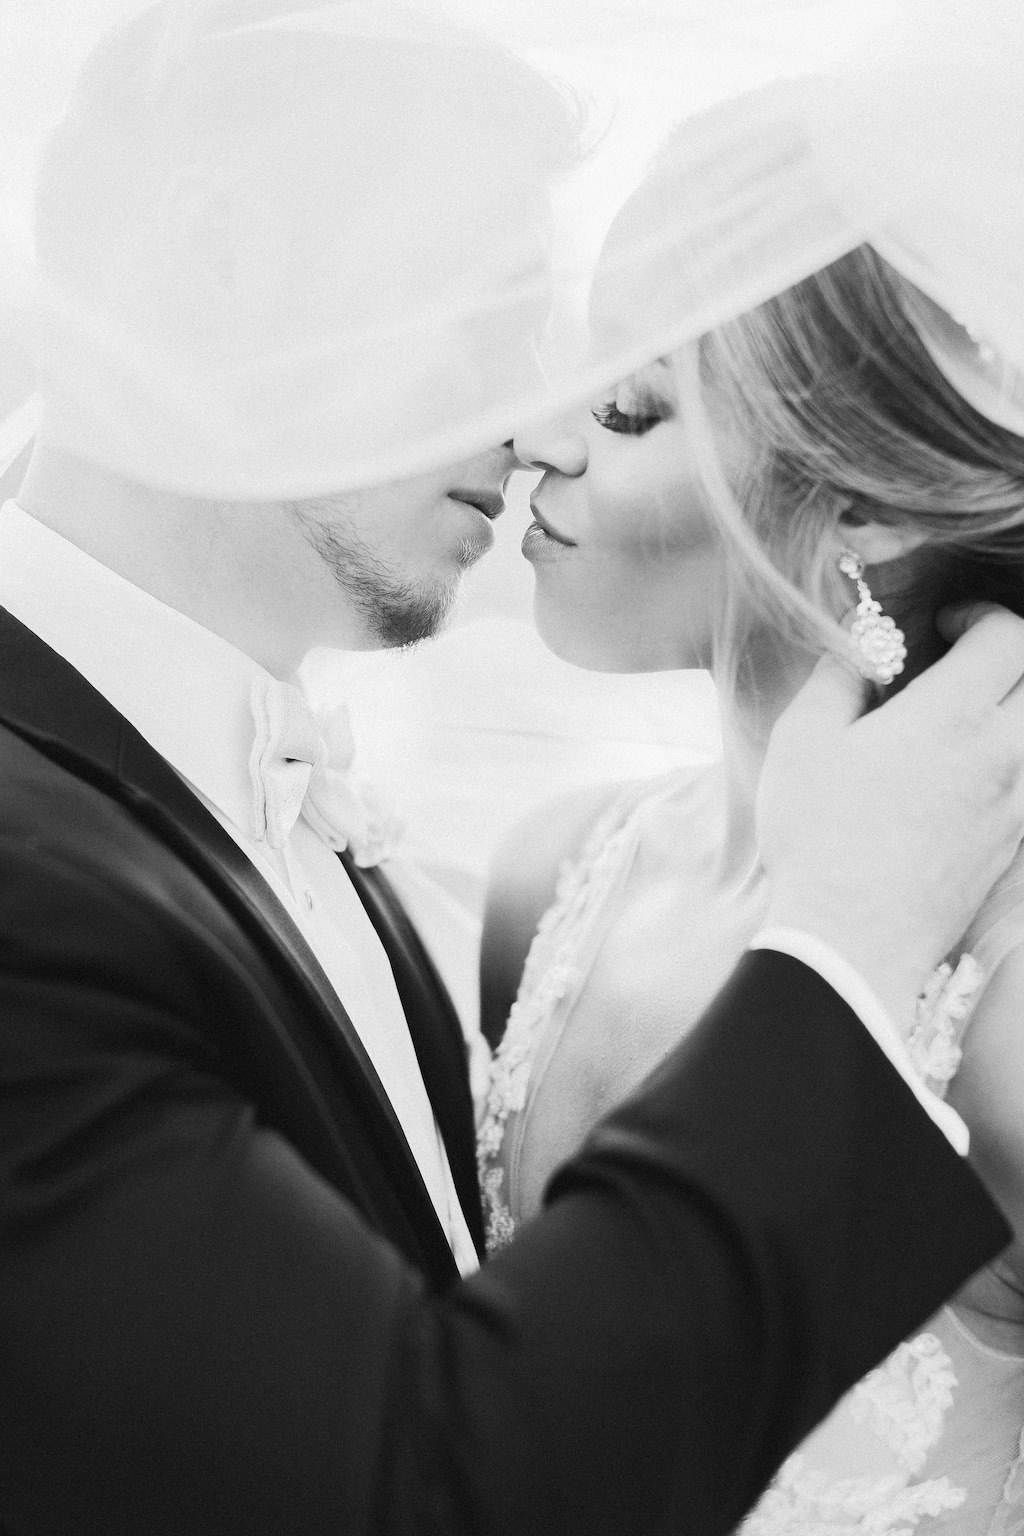 Creative Black and White Bride and Groom Wedding Portrait with Veil Blowing in Wind